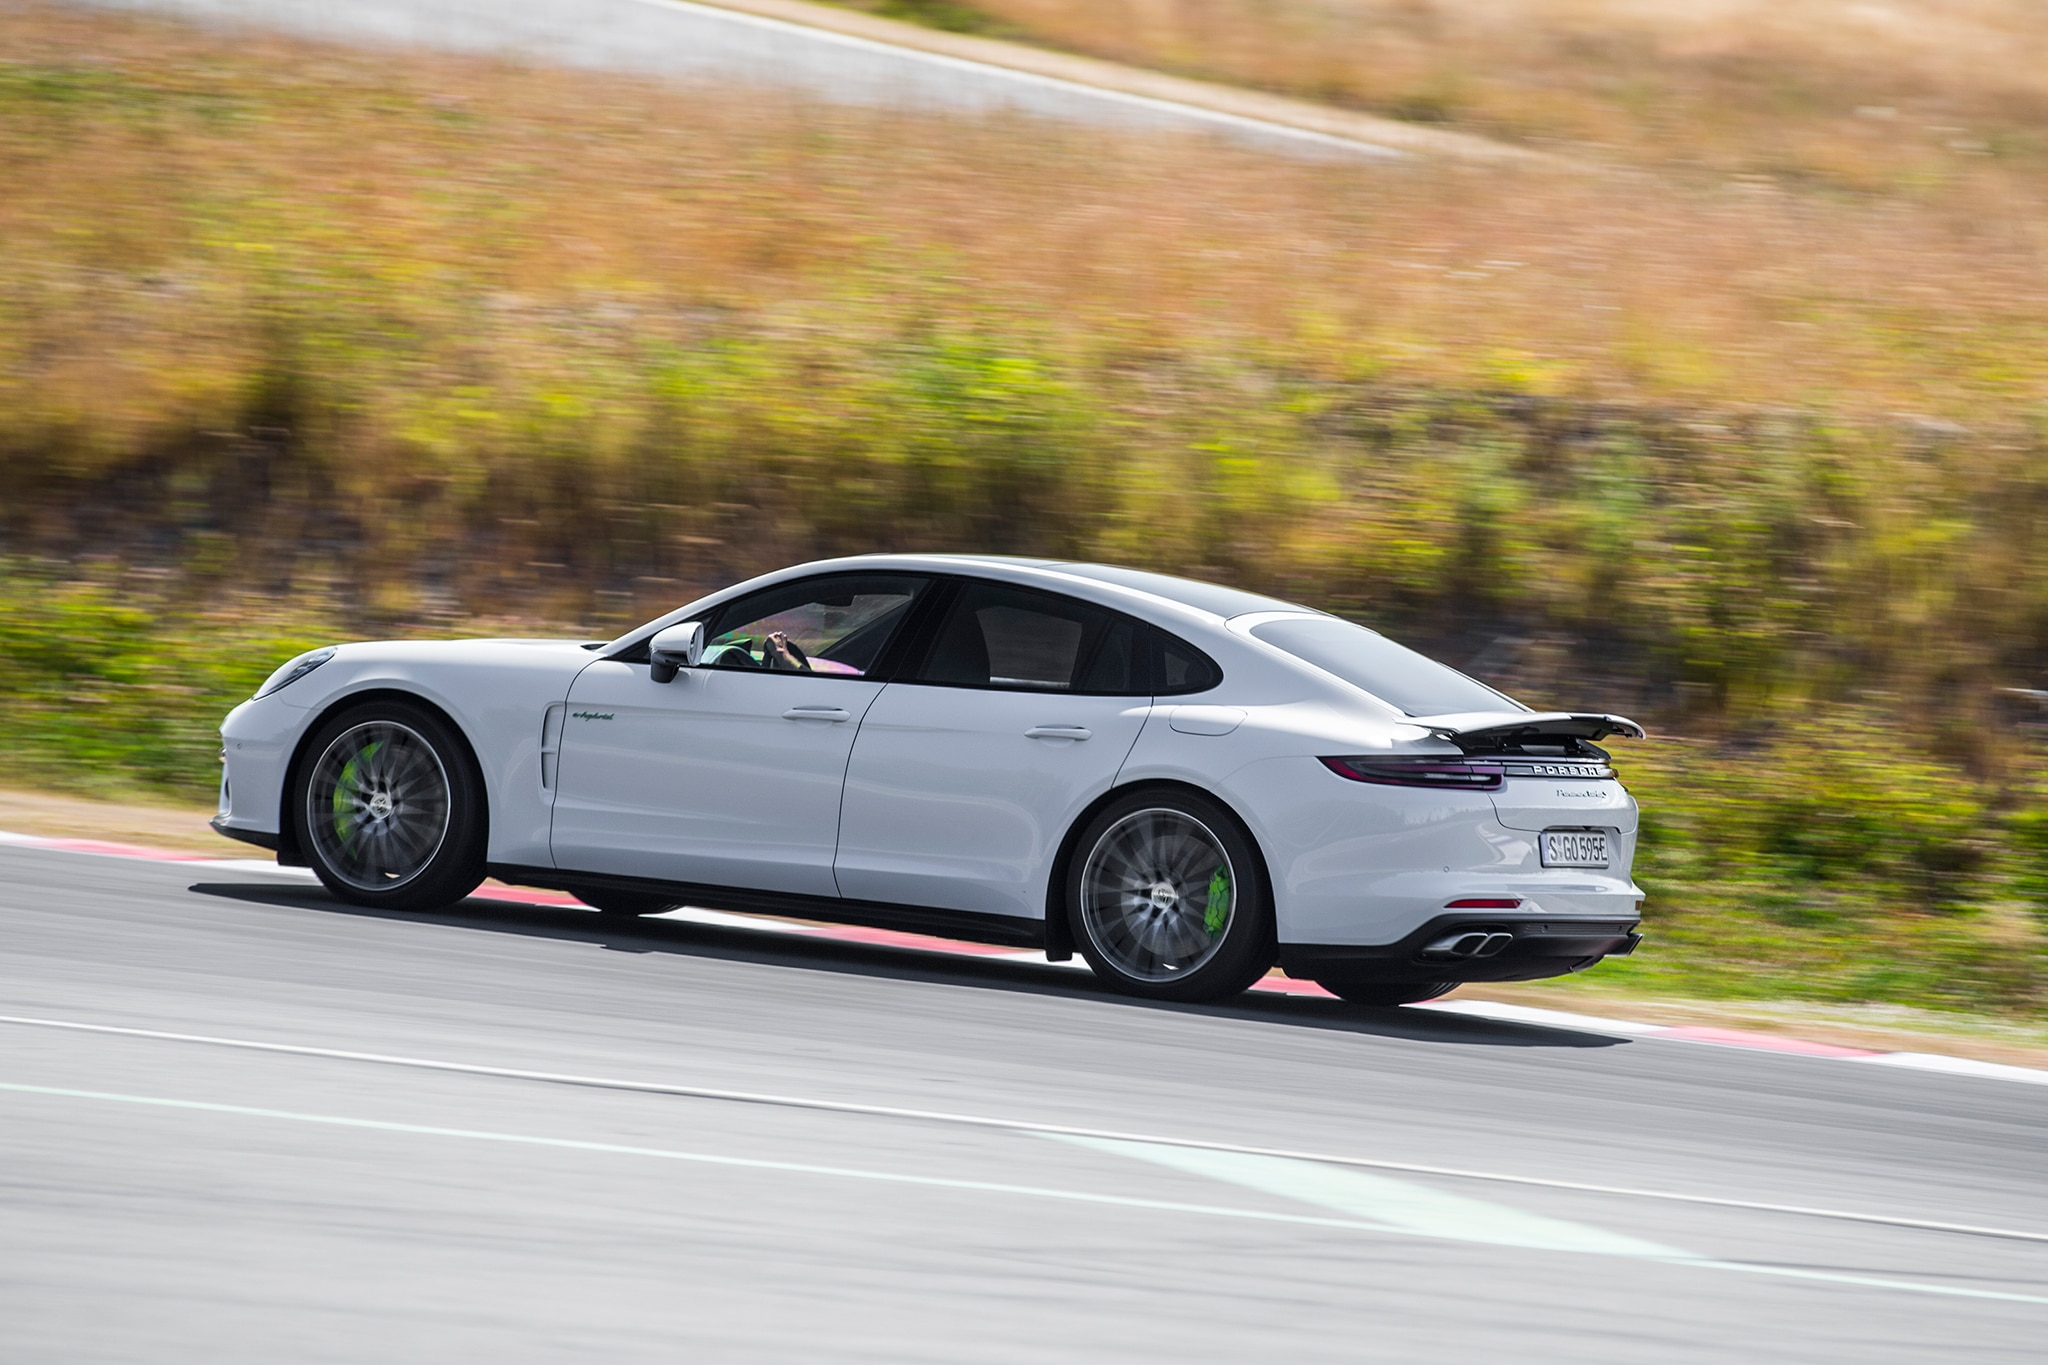 2018 porsche electric car. interesting 2018 dial things to electriconly and you can travel with serene  vibrationfree battery power at speeds up 86 mph and if have the throttle discipline  intended 2018 porsche electric car